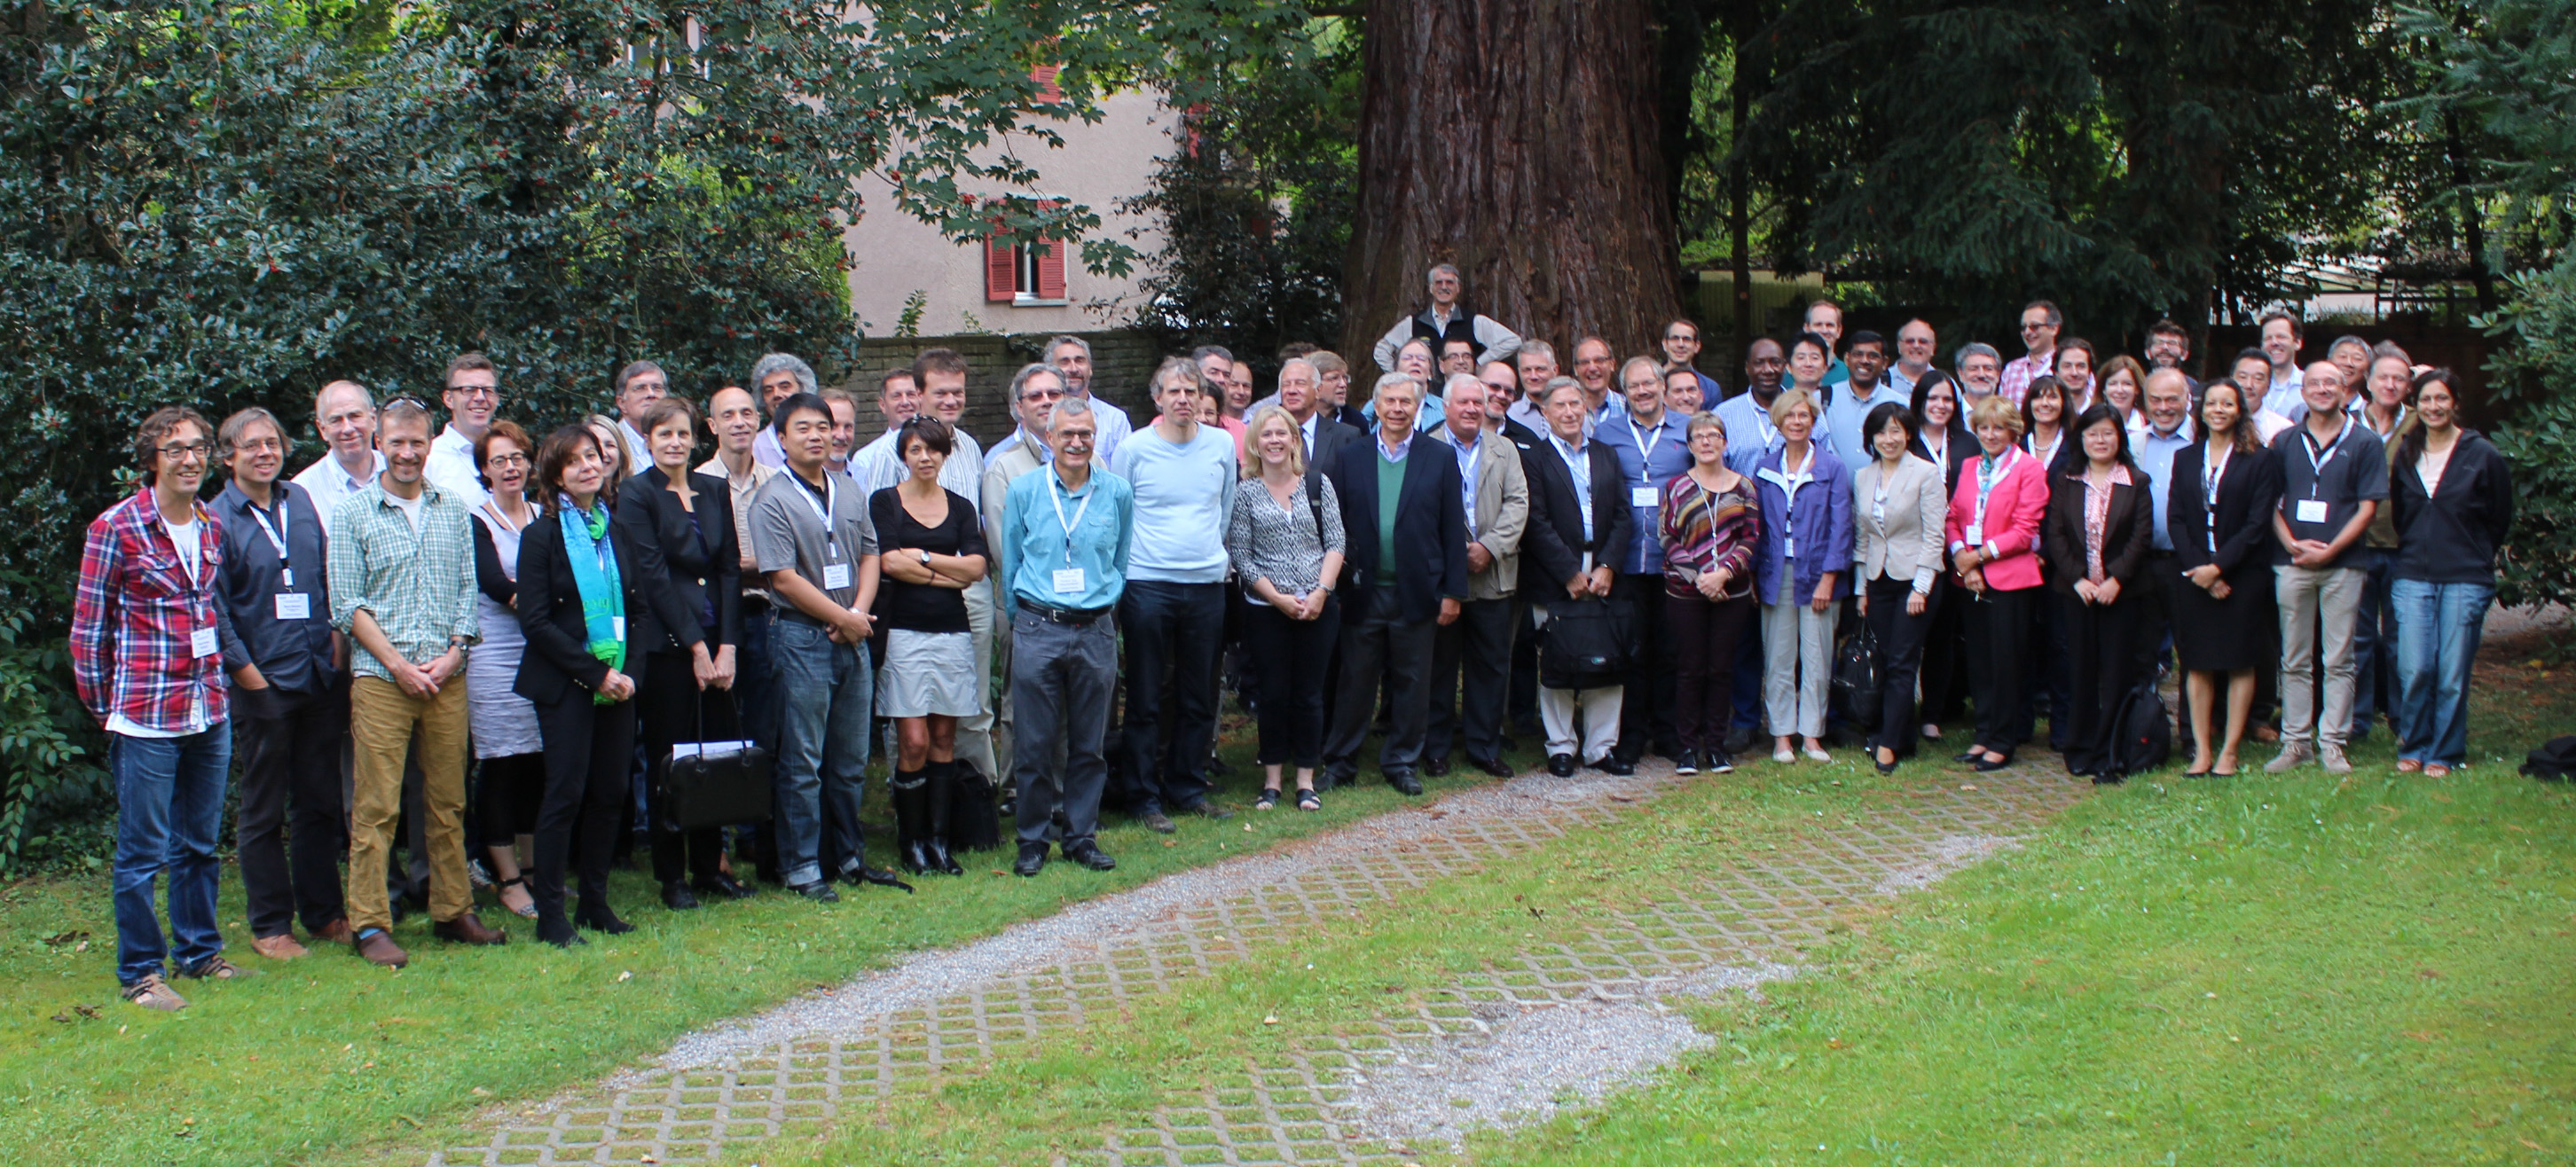 WS WCRP-IPCC Group Picture